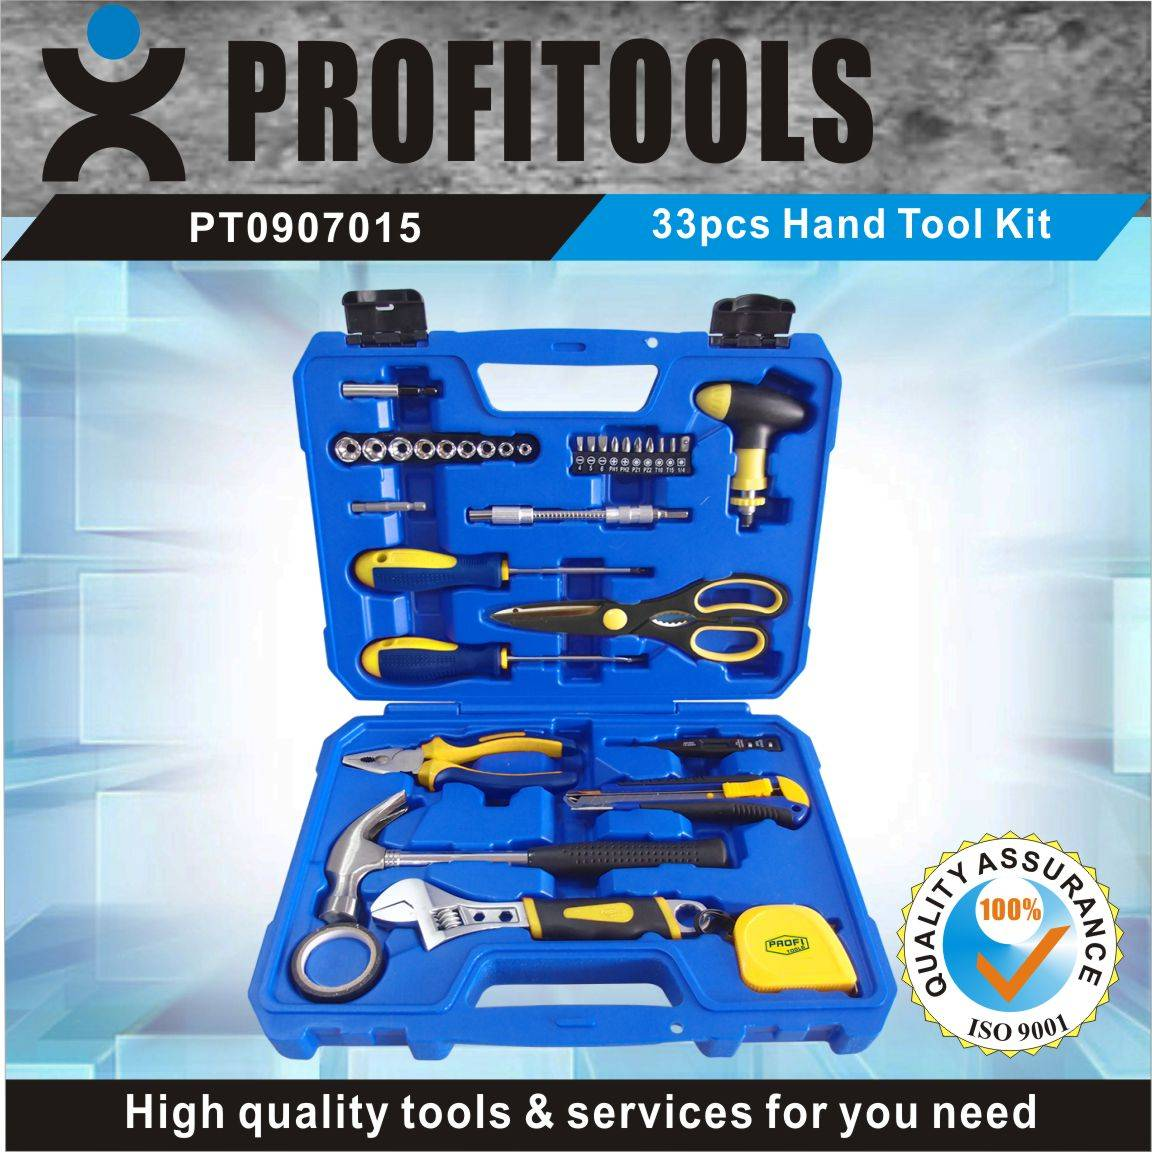 33pcs High Quality Hand Tool Set for Home using